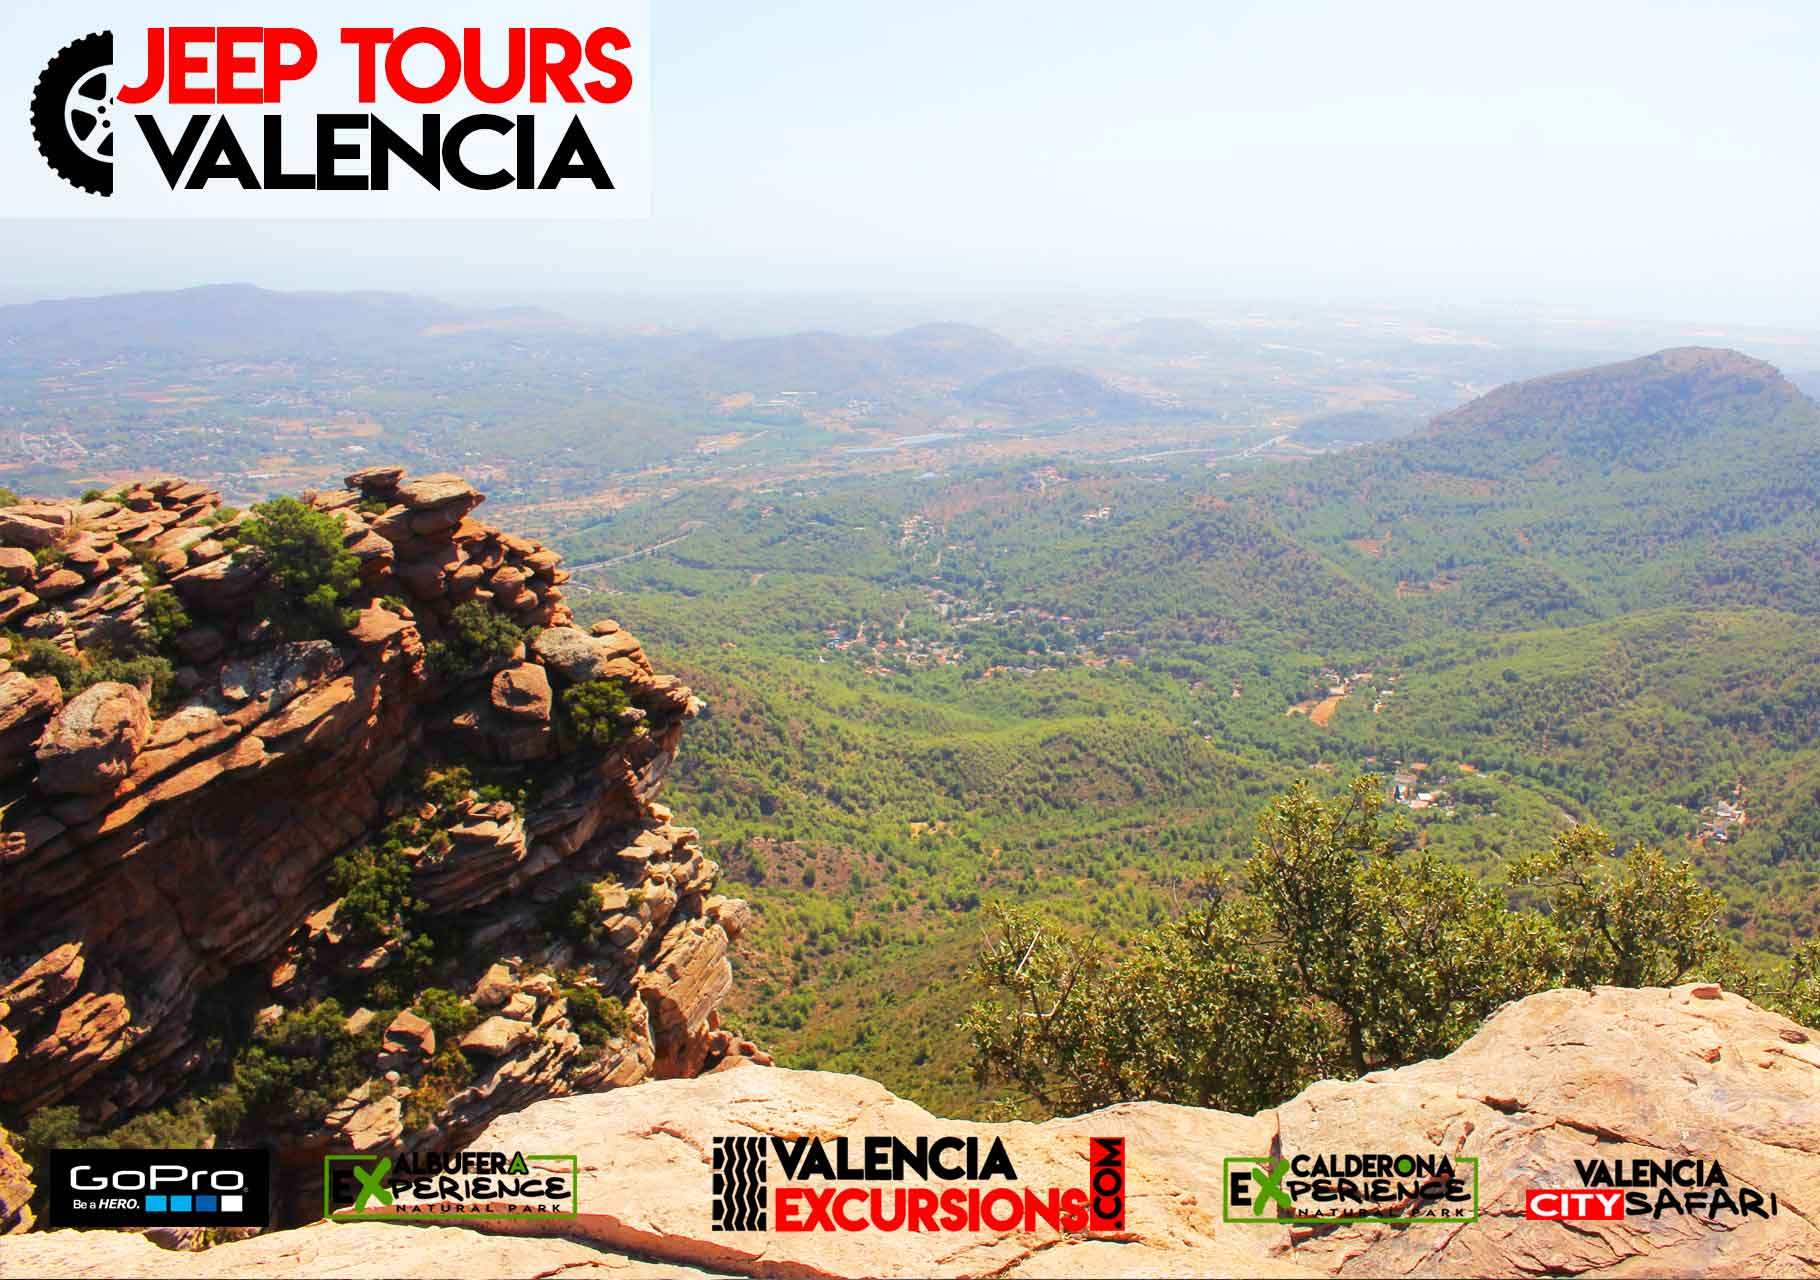 El Garbi viewpoint 700m high during Calderona EXperience jeep tour in Valencia